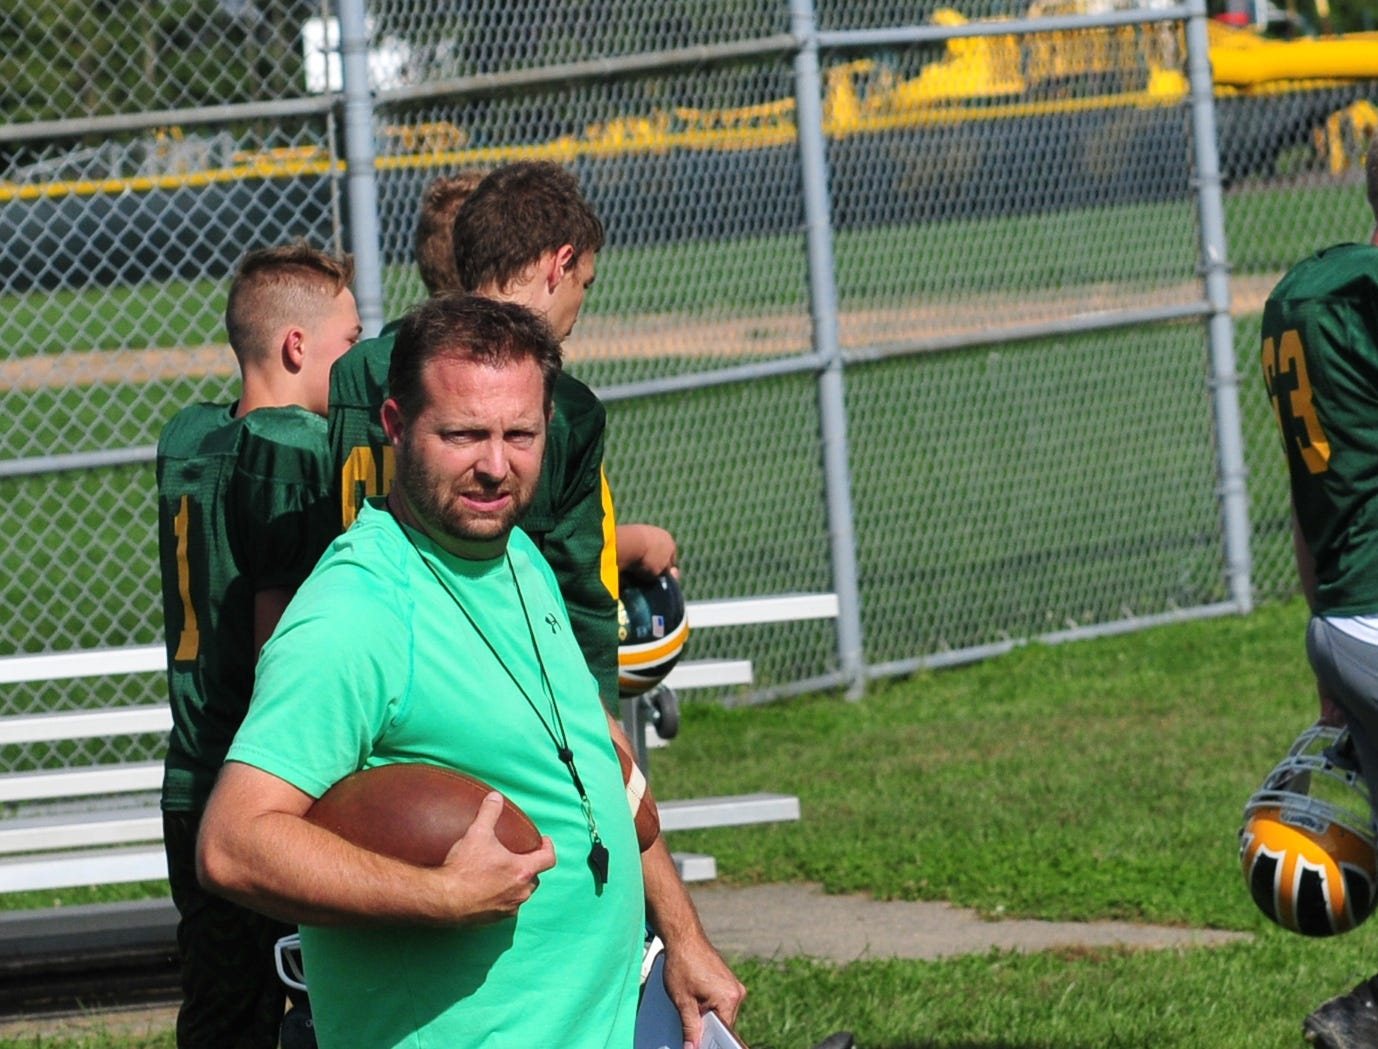 Ryan Halloran was named Northeastern High School's football co-coach after longtime head coach Mike Roeder resigned on Oct. 3, 2018.